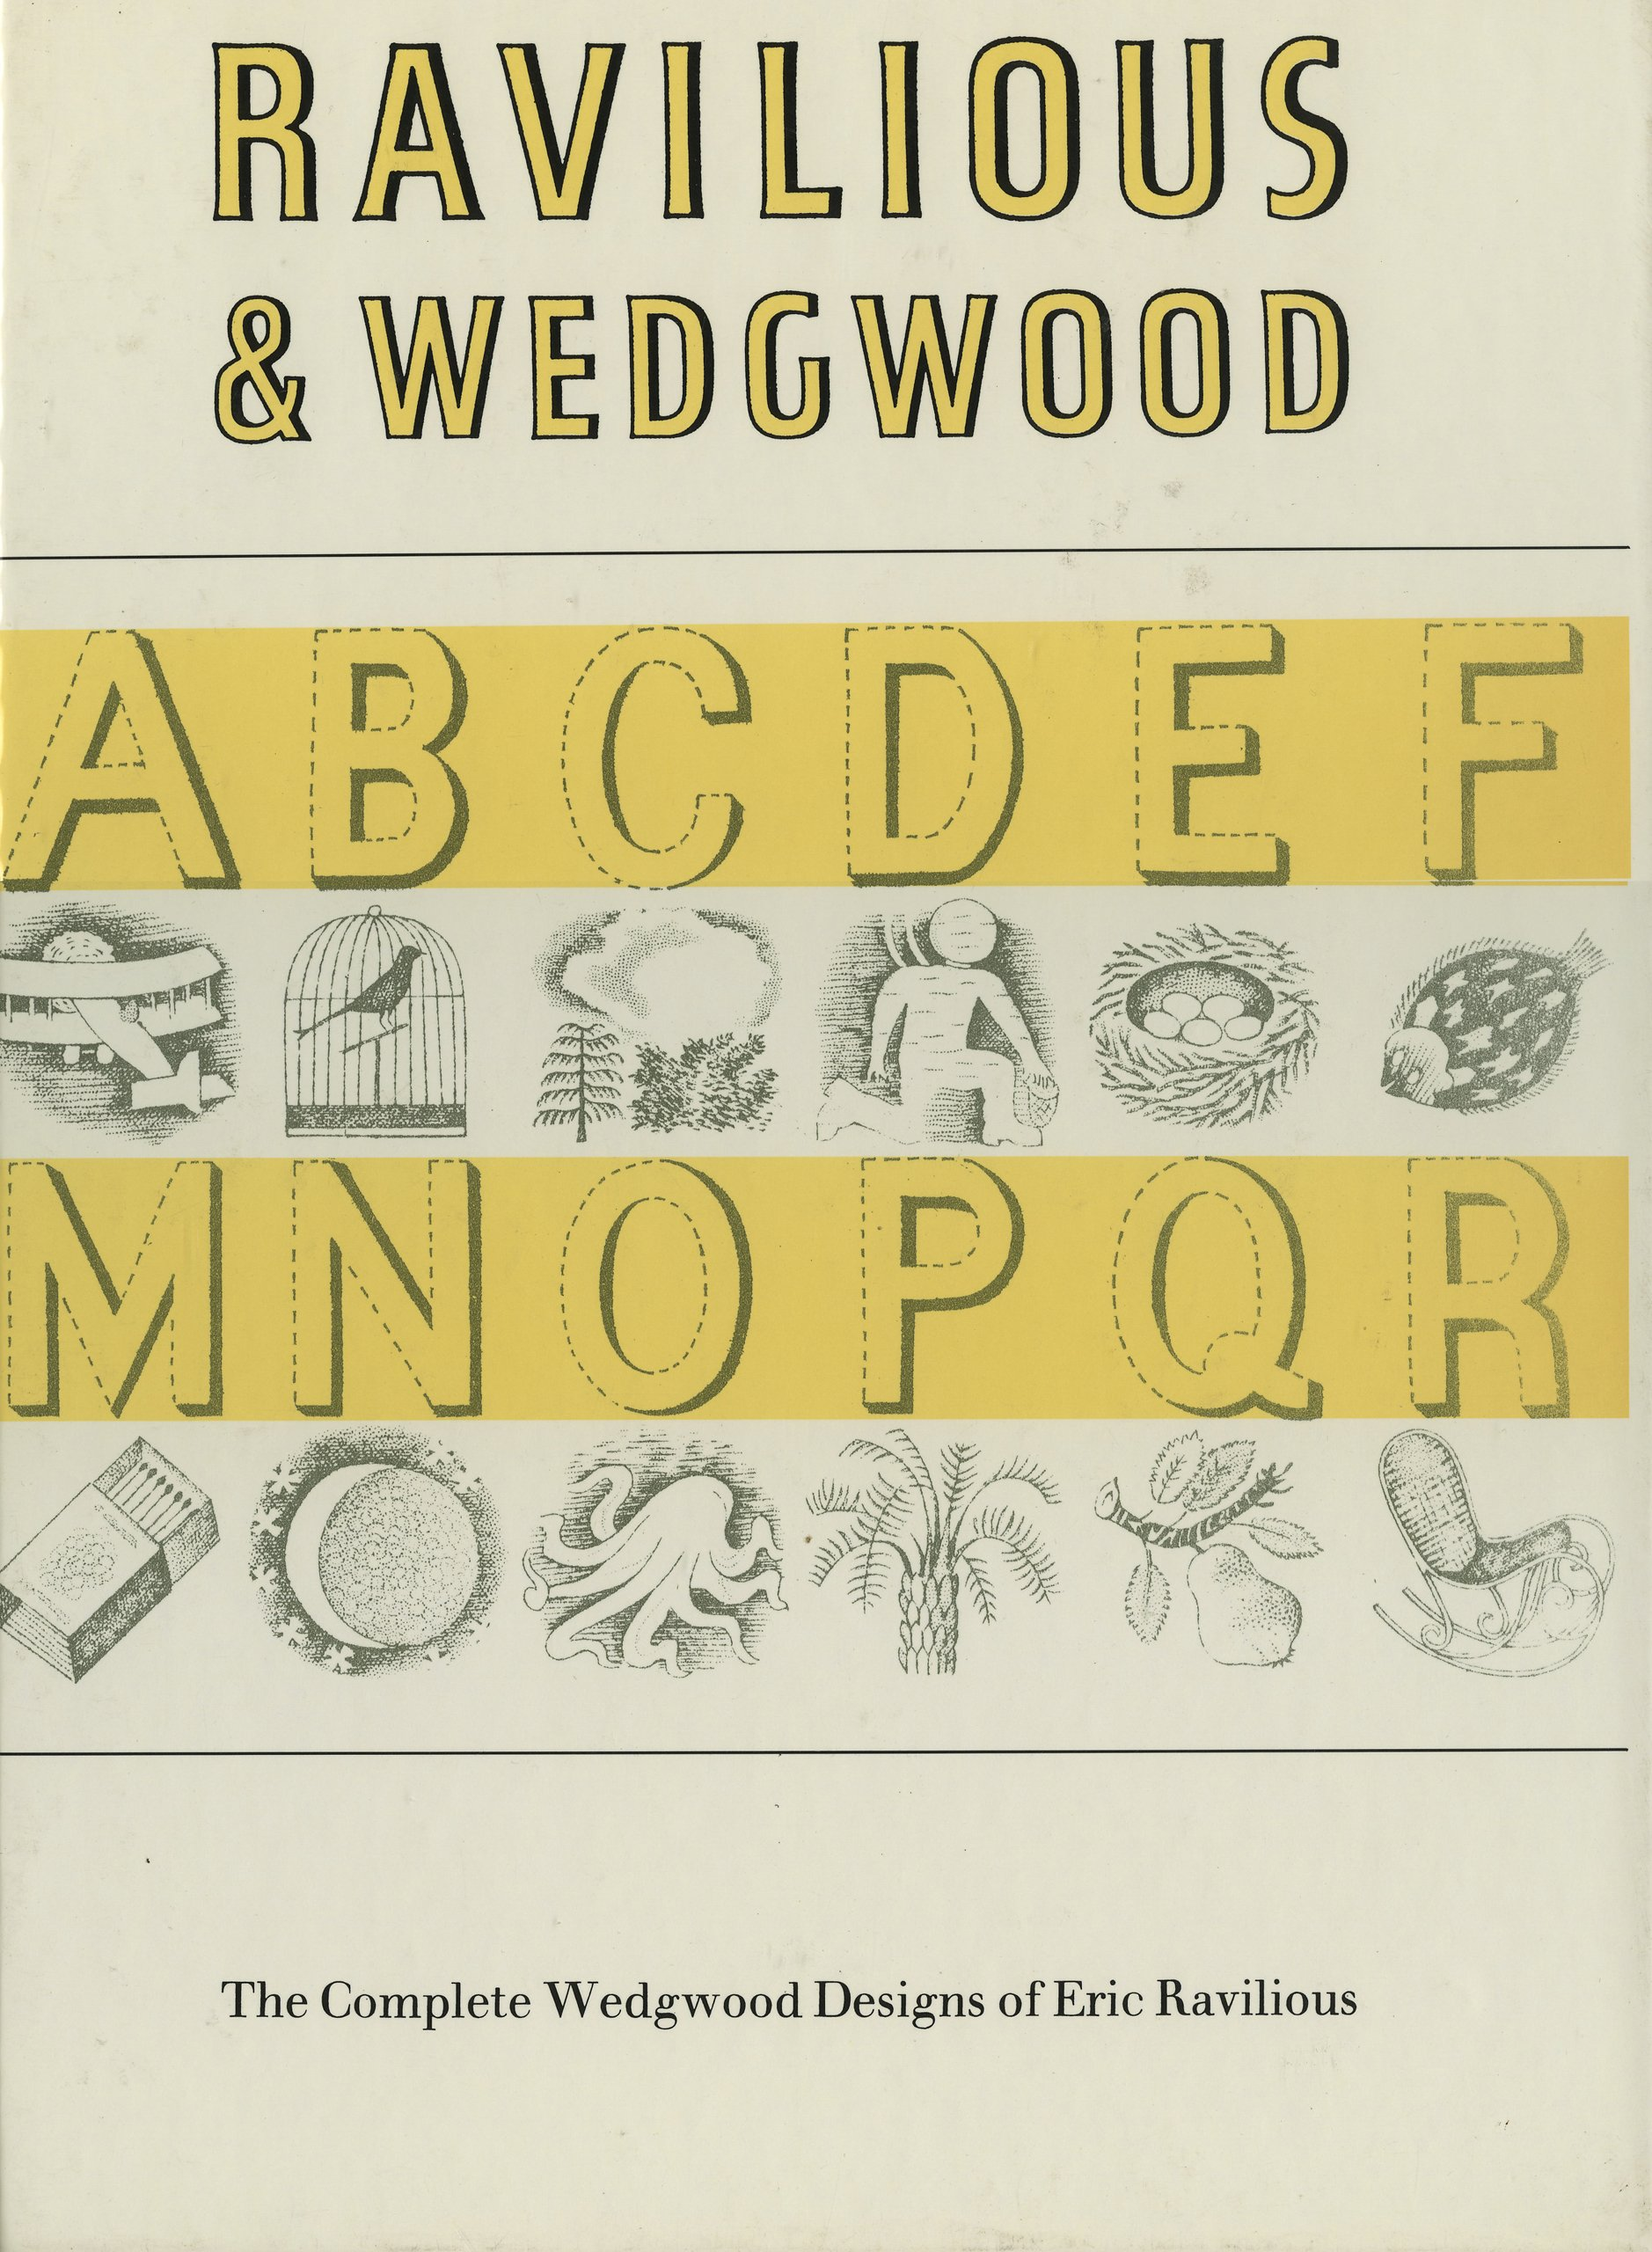 Ravilious & Wedgwood: The Complete Wedgwood Designs of Eric Ravilious